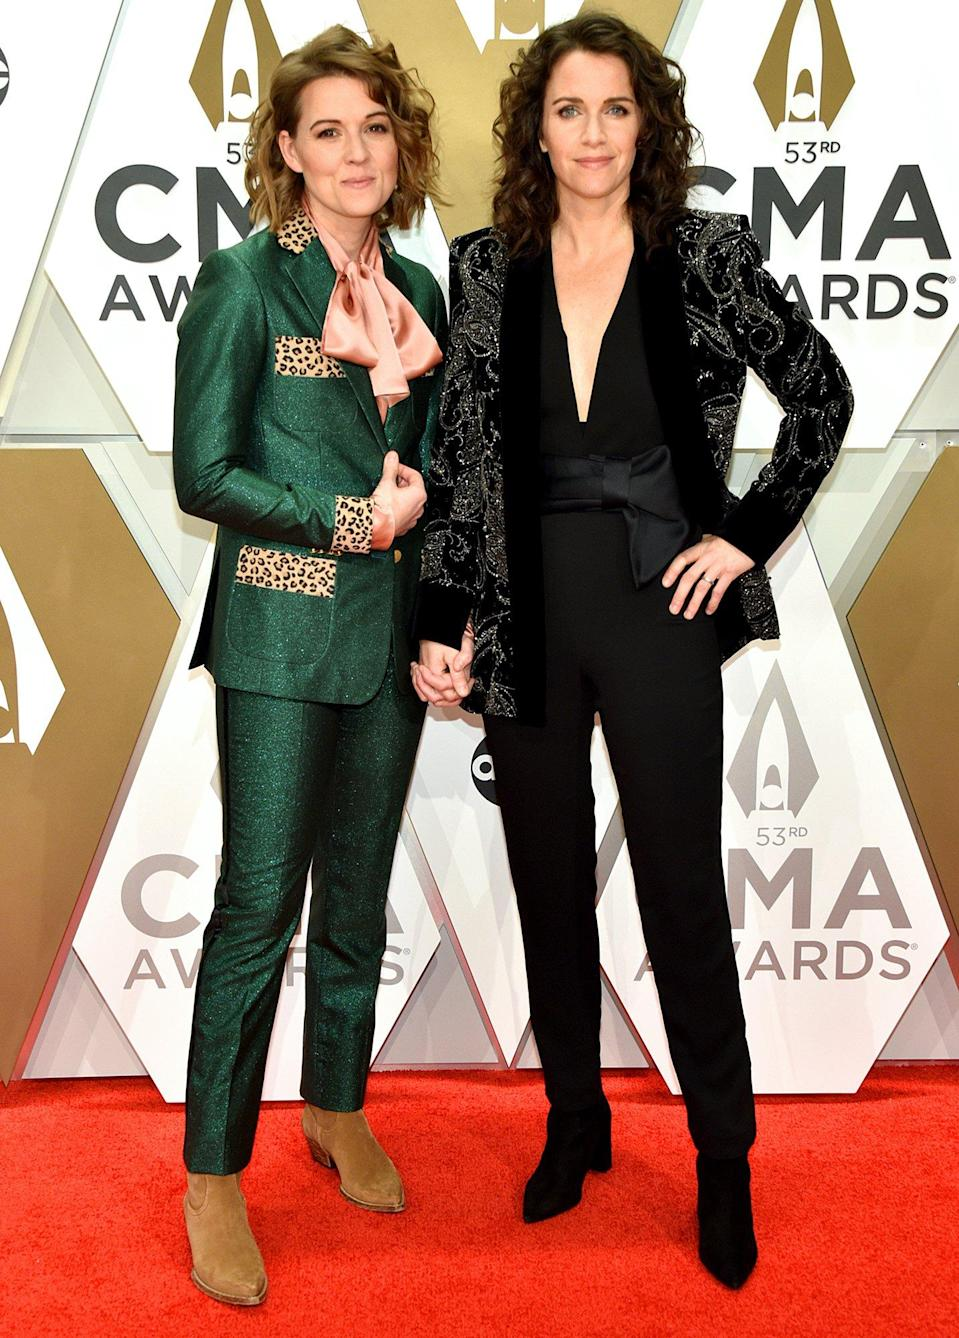 2015 CMAS: Best and Worst Dressed